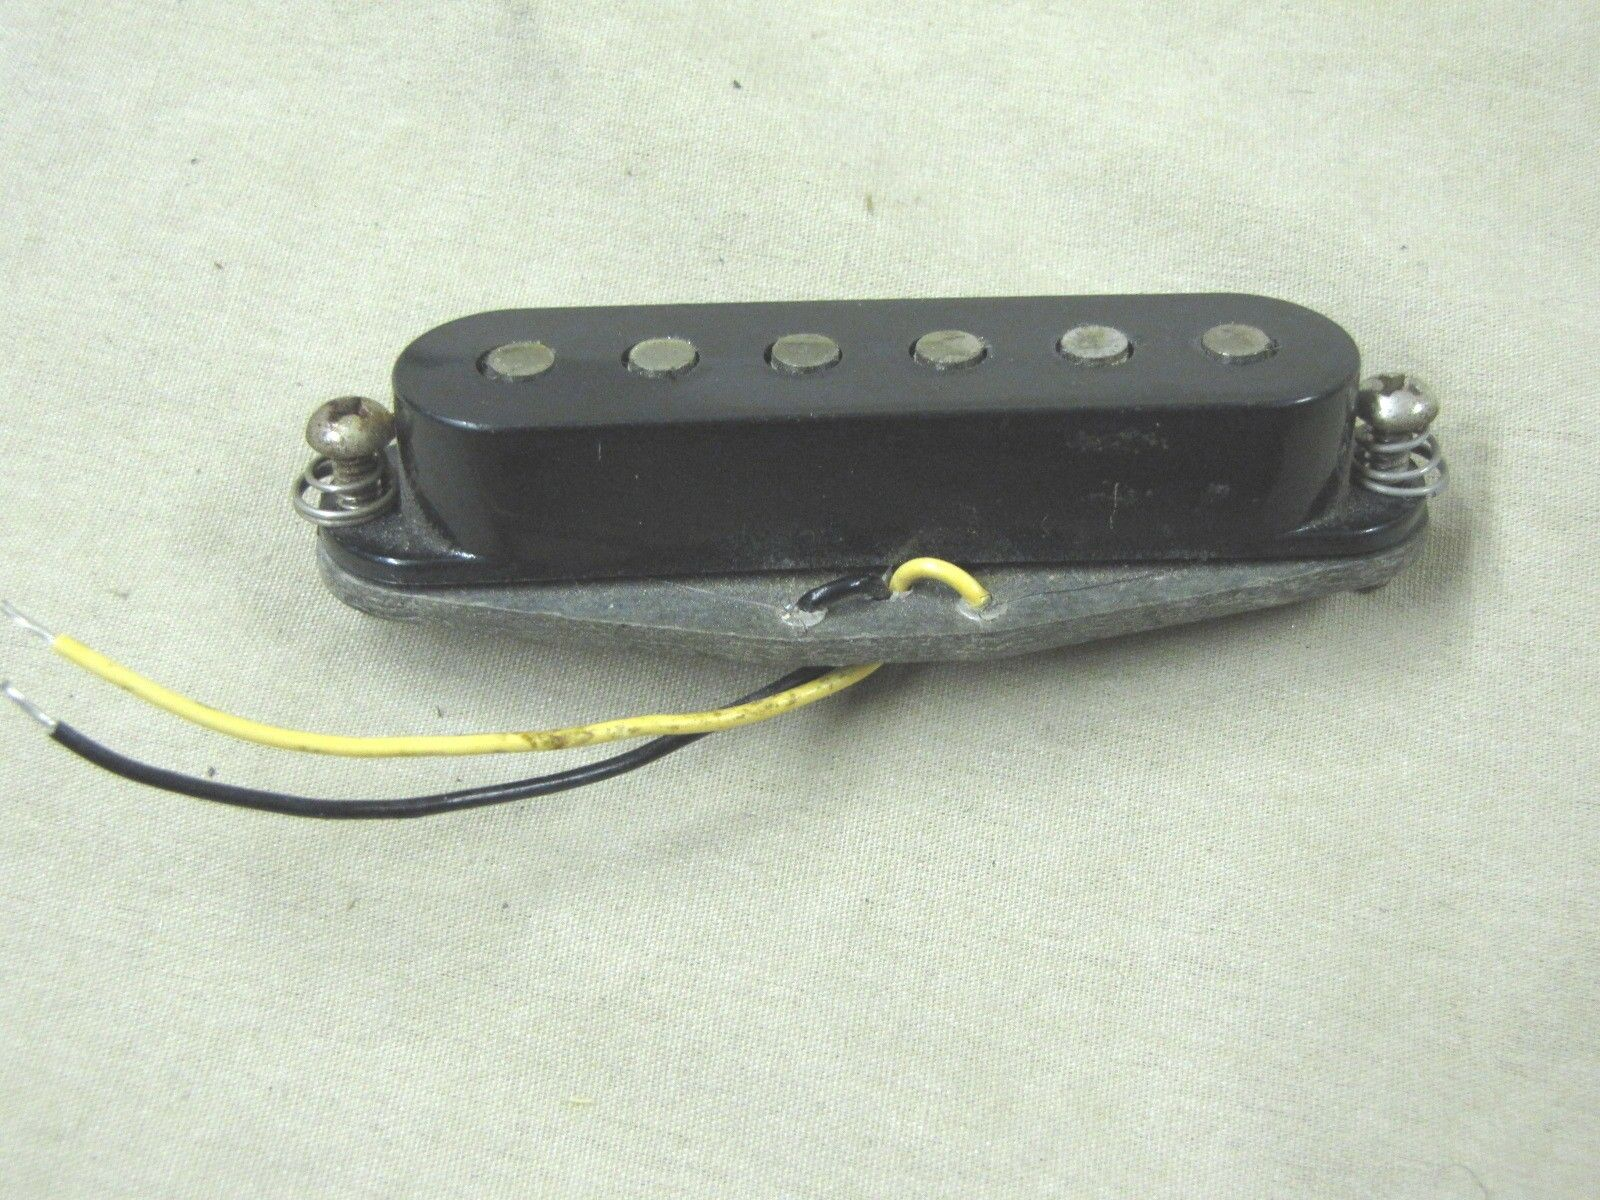 1980 Fender Statocaster Pickup and Cover Original